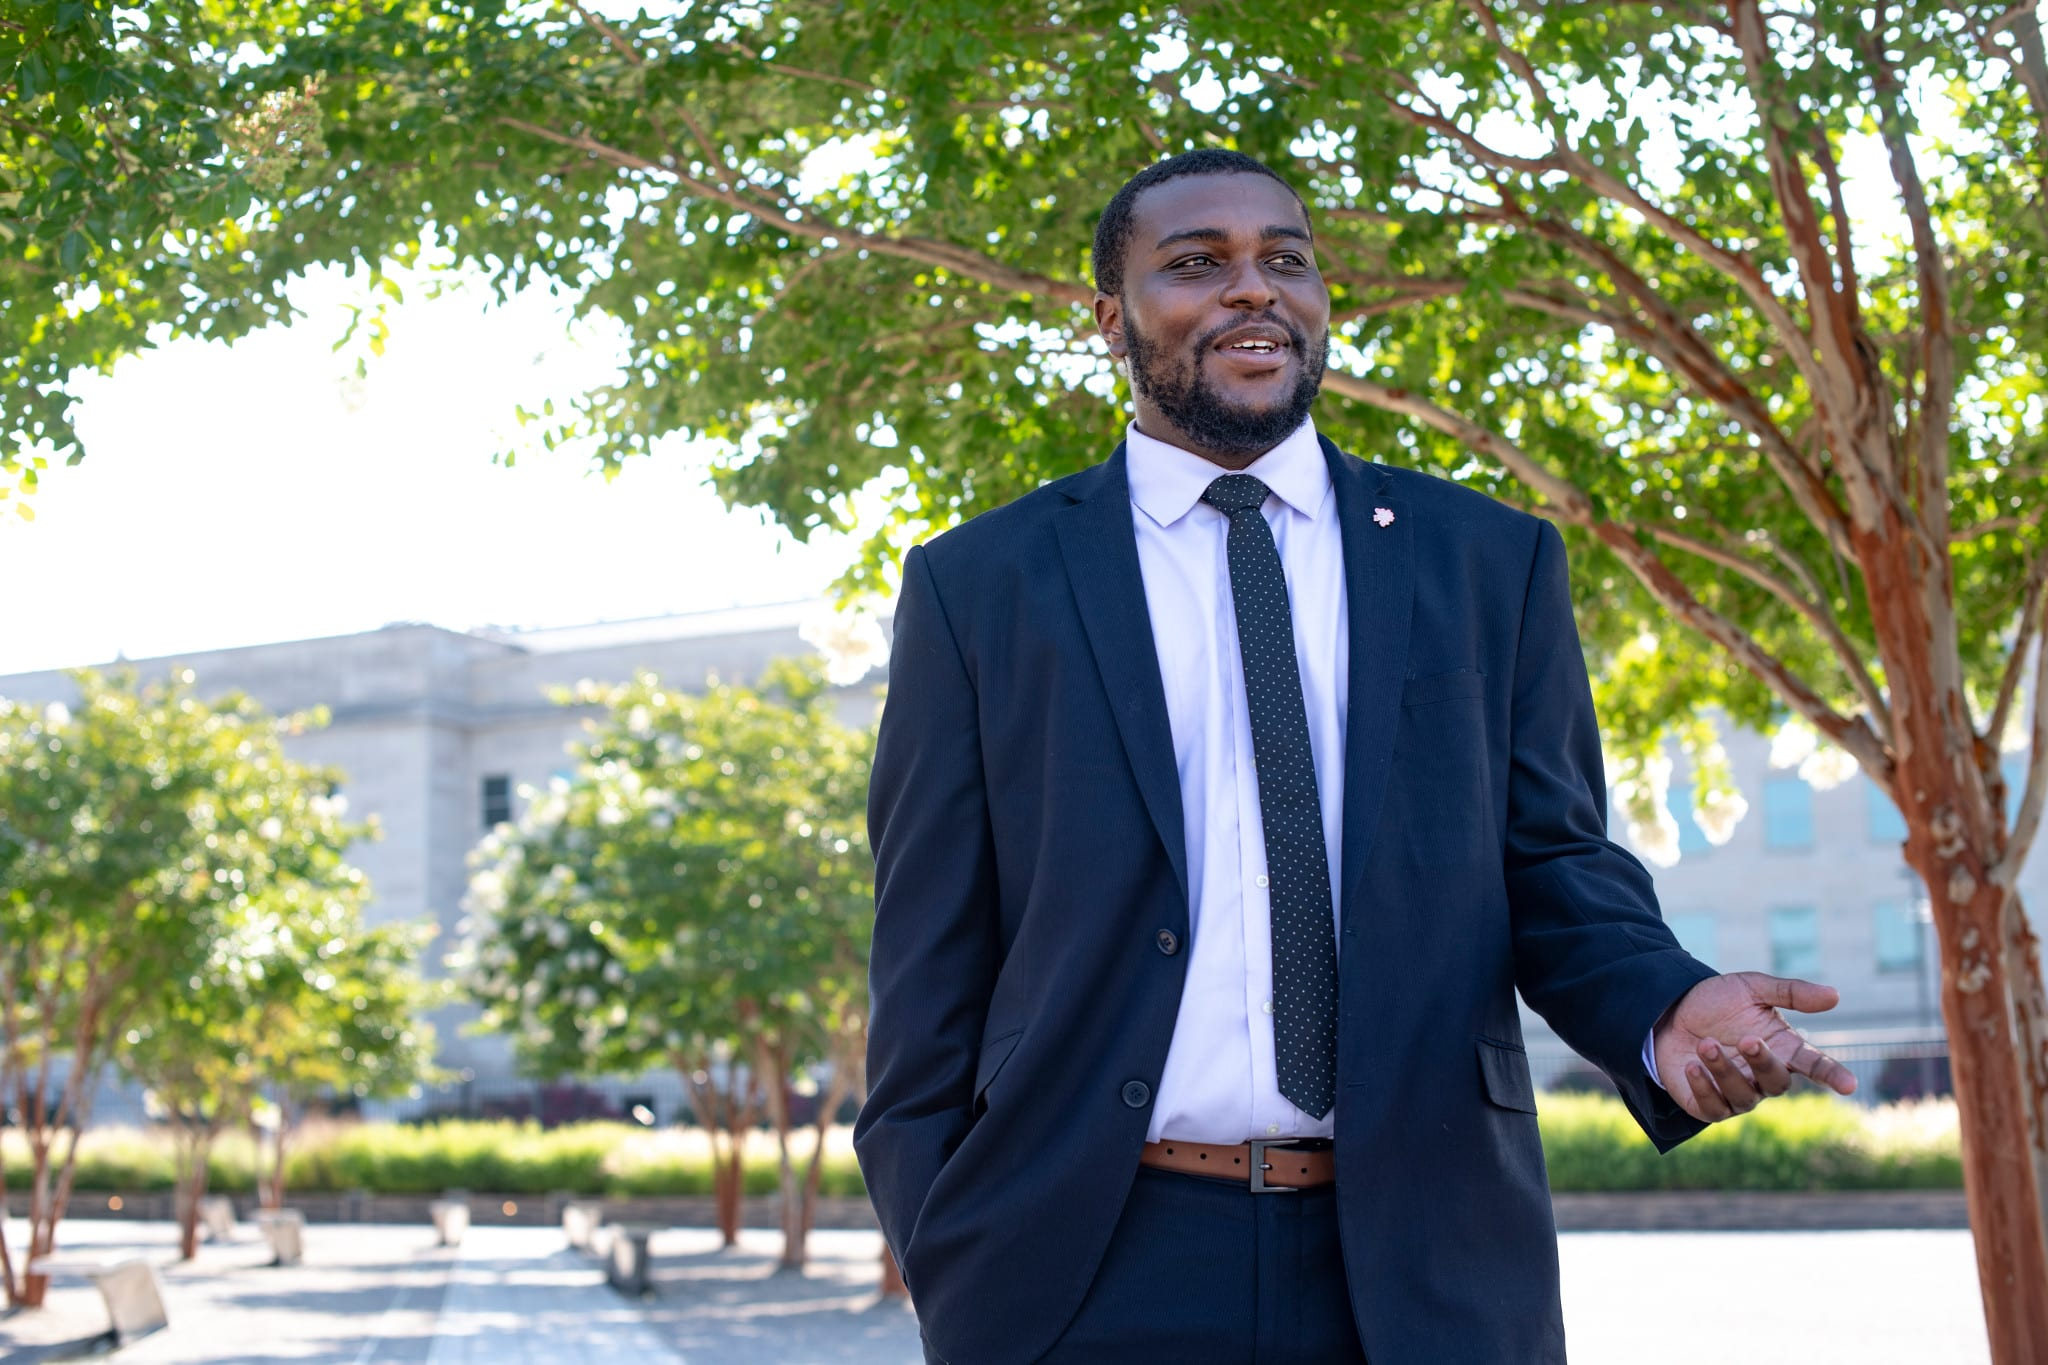 Evan Malbrough, a Public Policy undergraduate in the Andrew Young School outside of the Pentagon